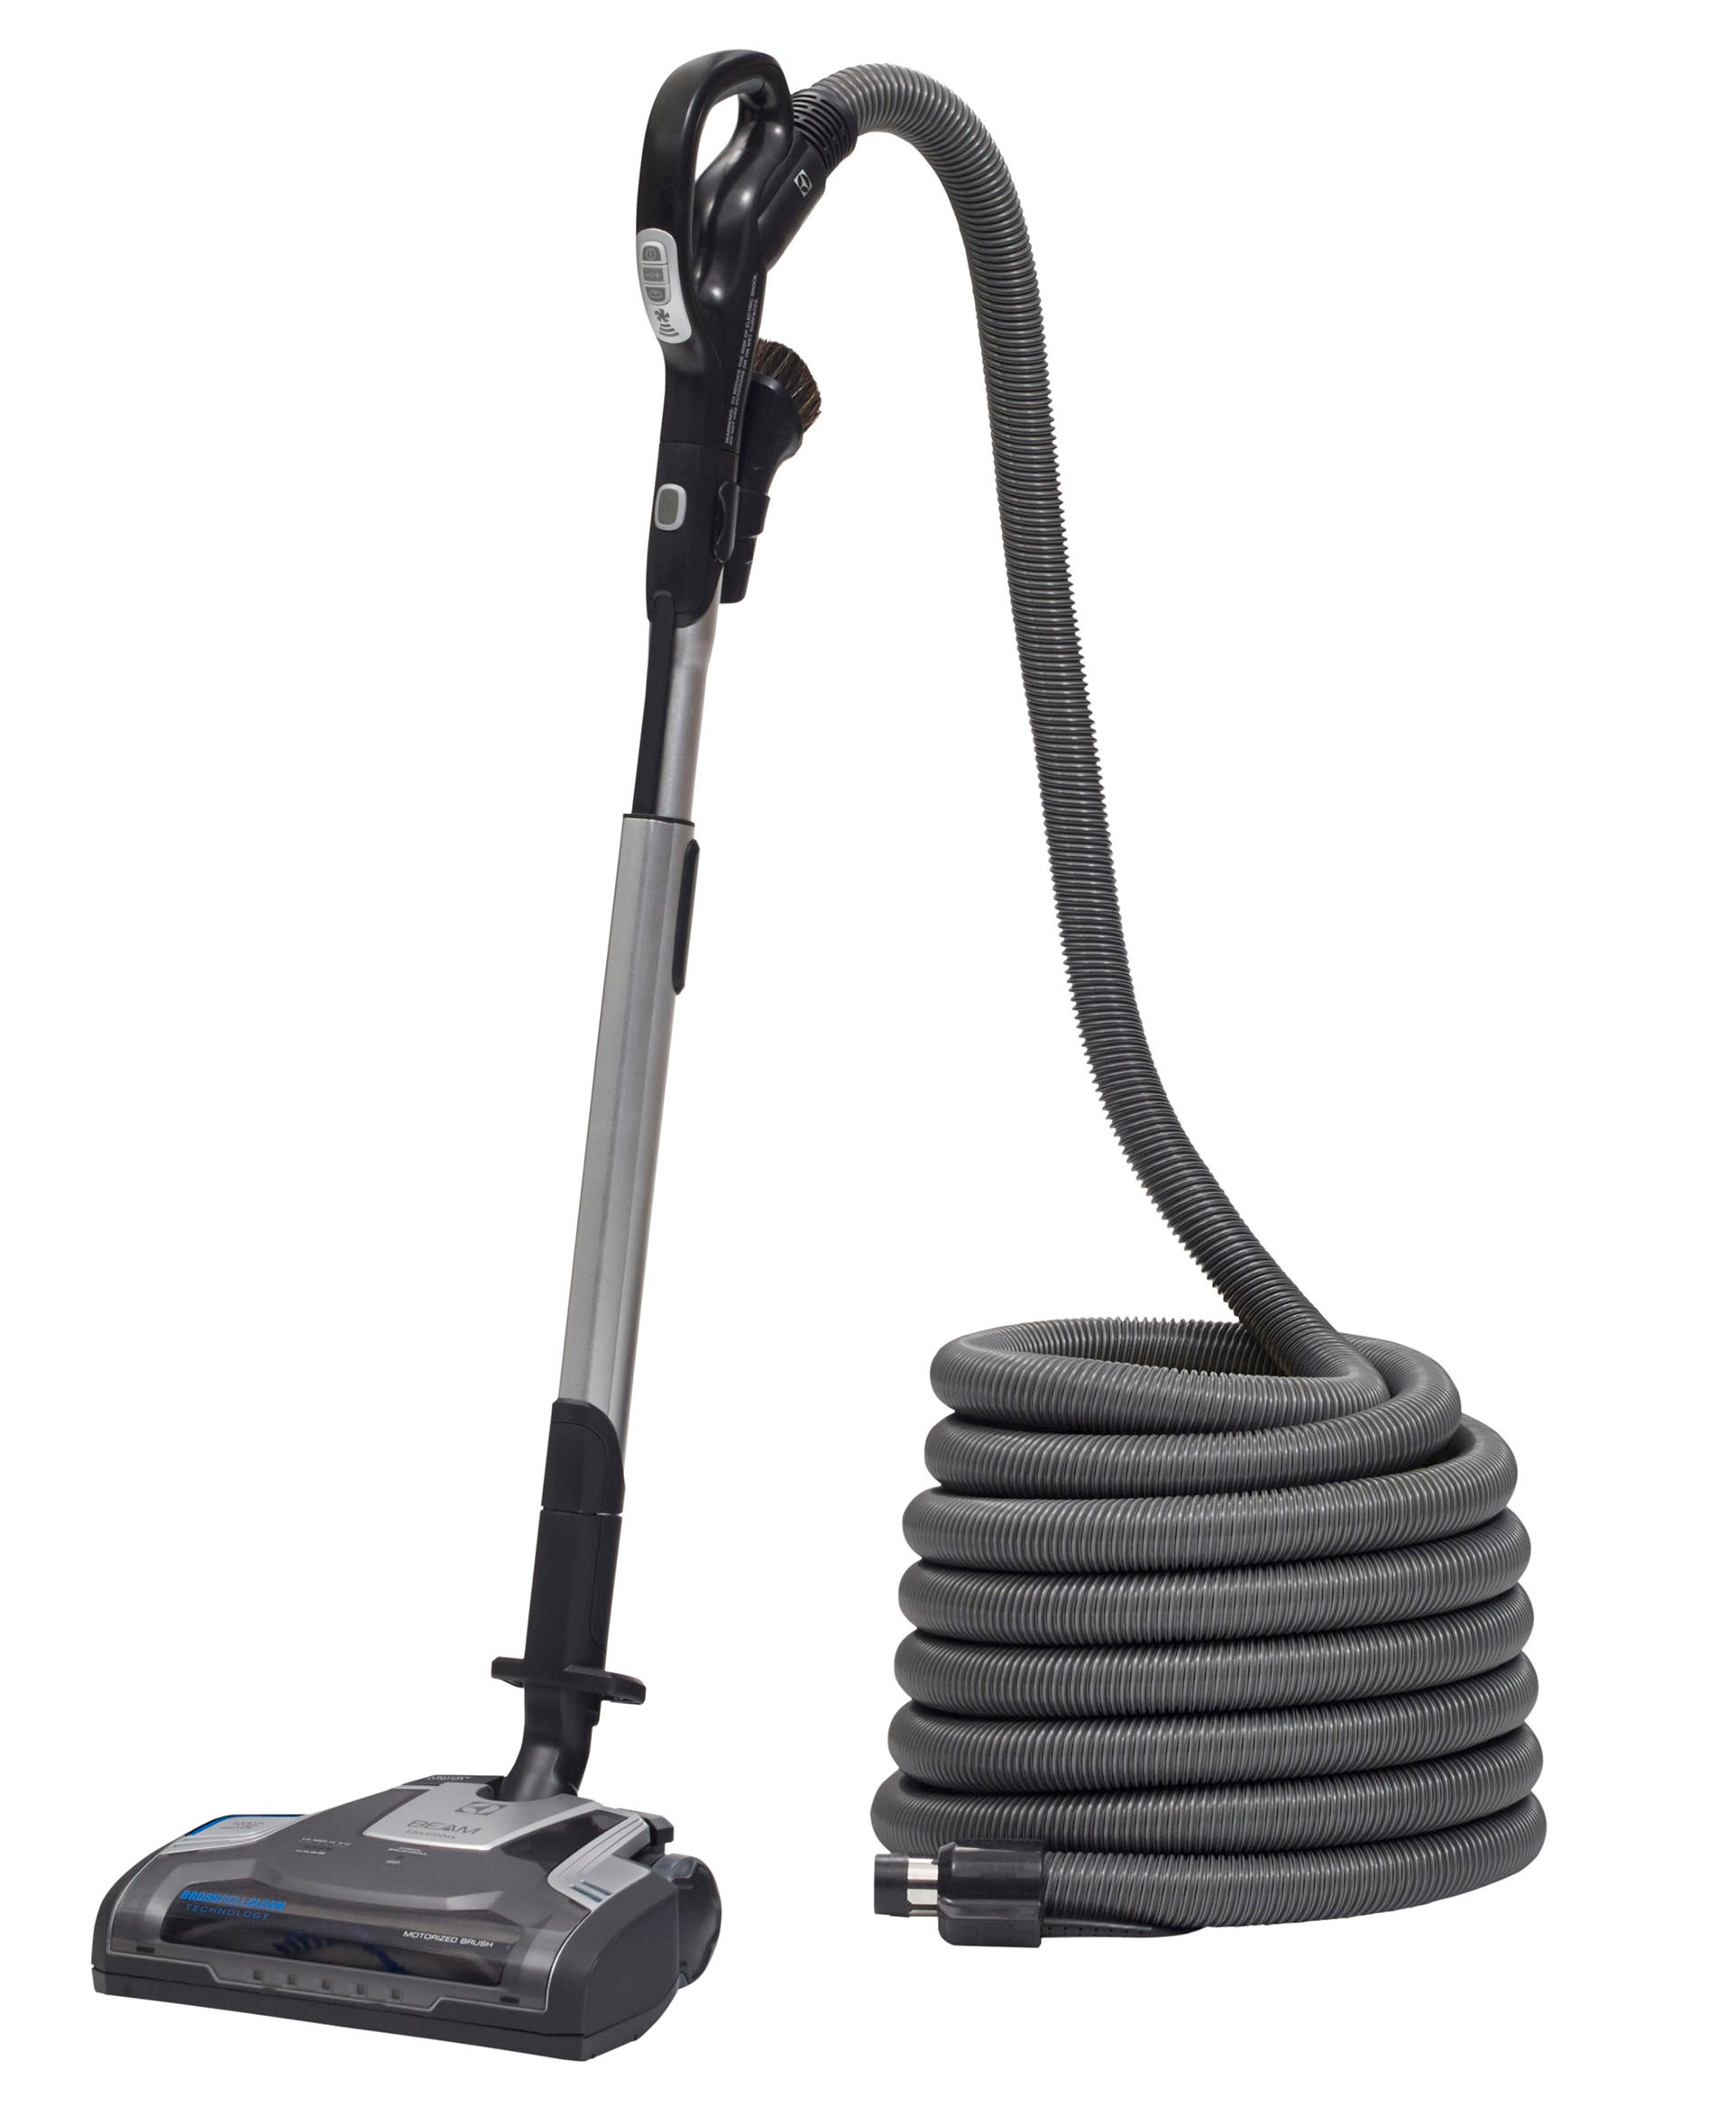 https://www.speedyvacuum.ca/public/uploads/products_photo/58190c1b68ee0.jpg